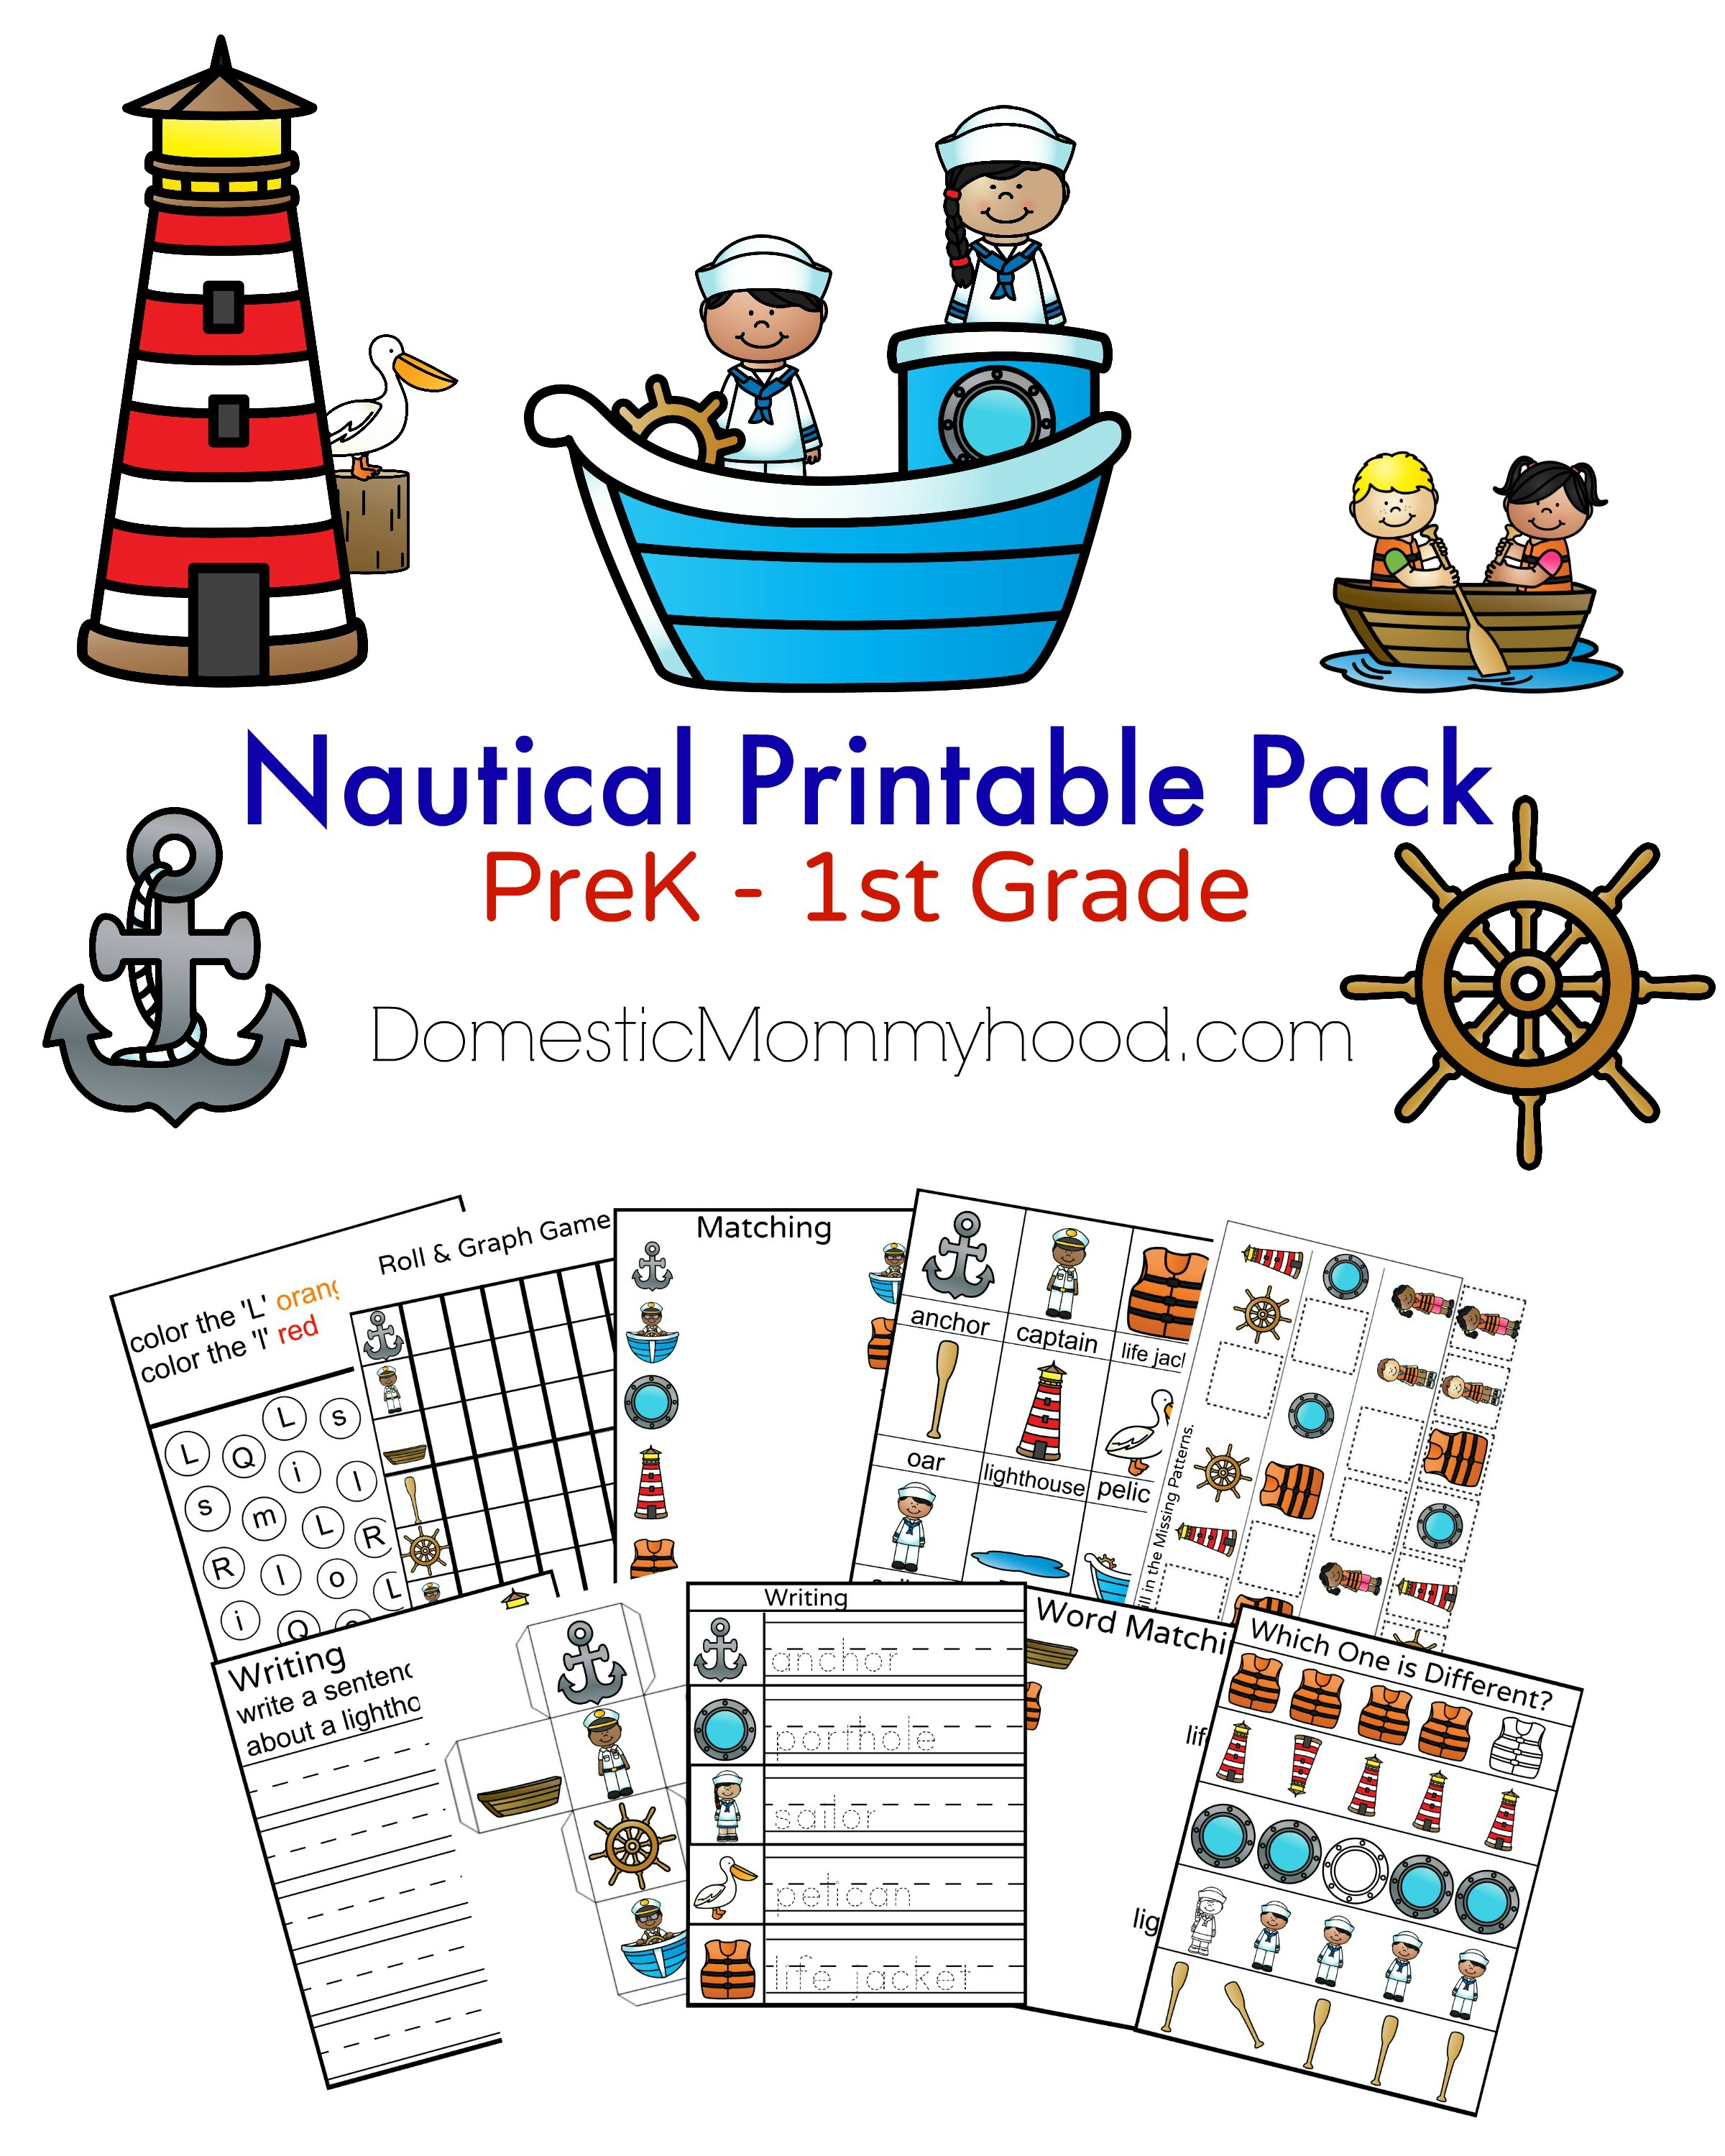 Nautical Printable Pack Cover DomesticMommyhood.com